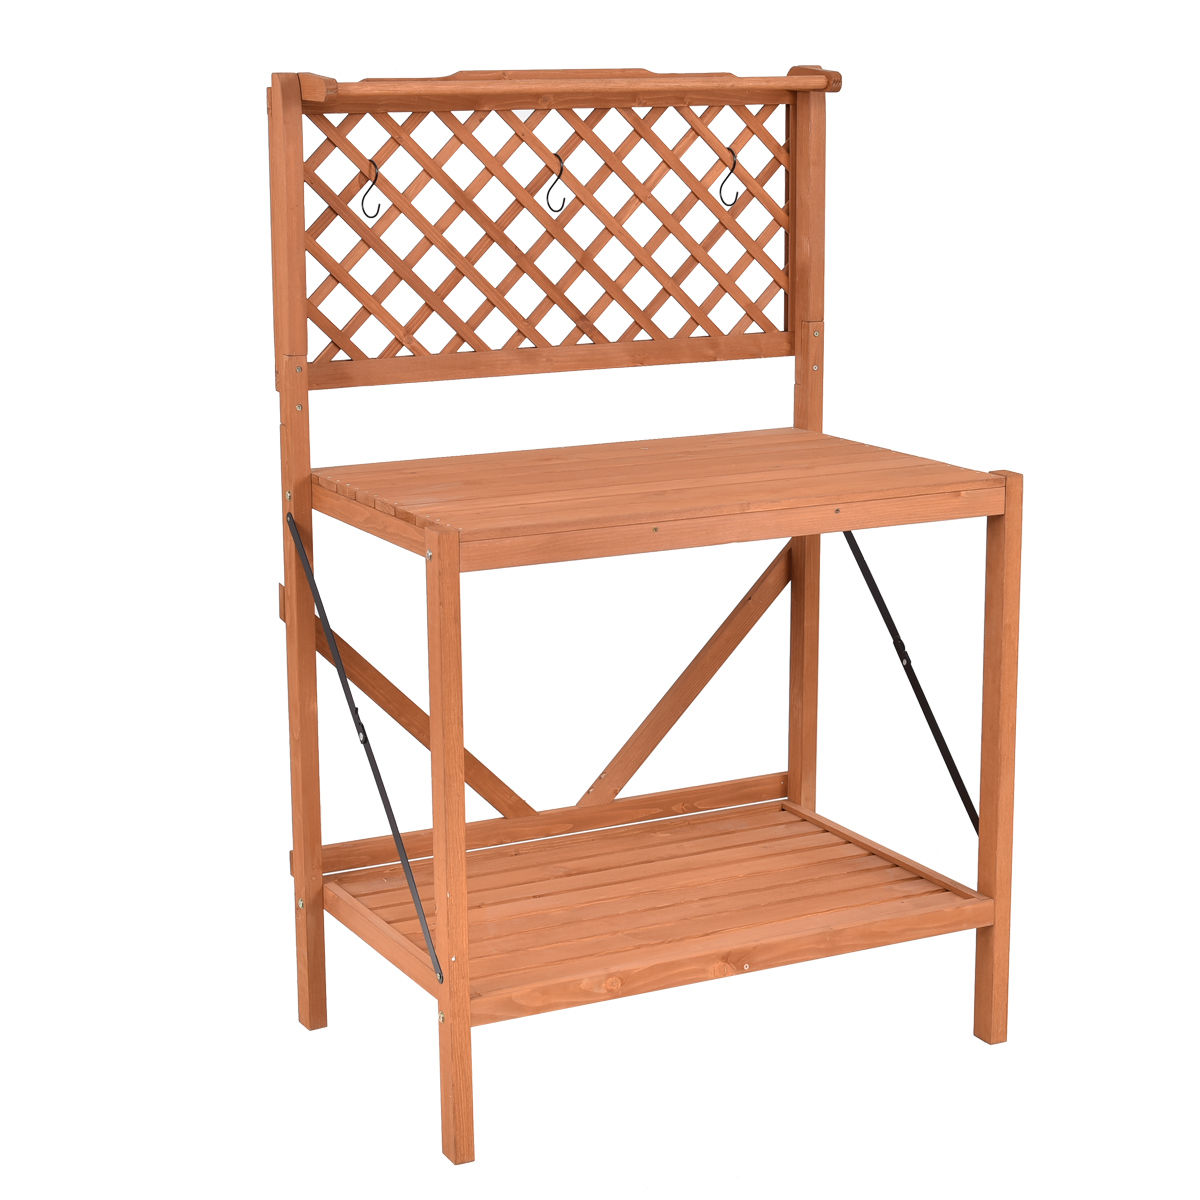 """GHP 35.4""""x23.4""""x56.3"""" Folding Wooden Garden Potting Bench Workstation with 3 Hooks"""